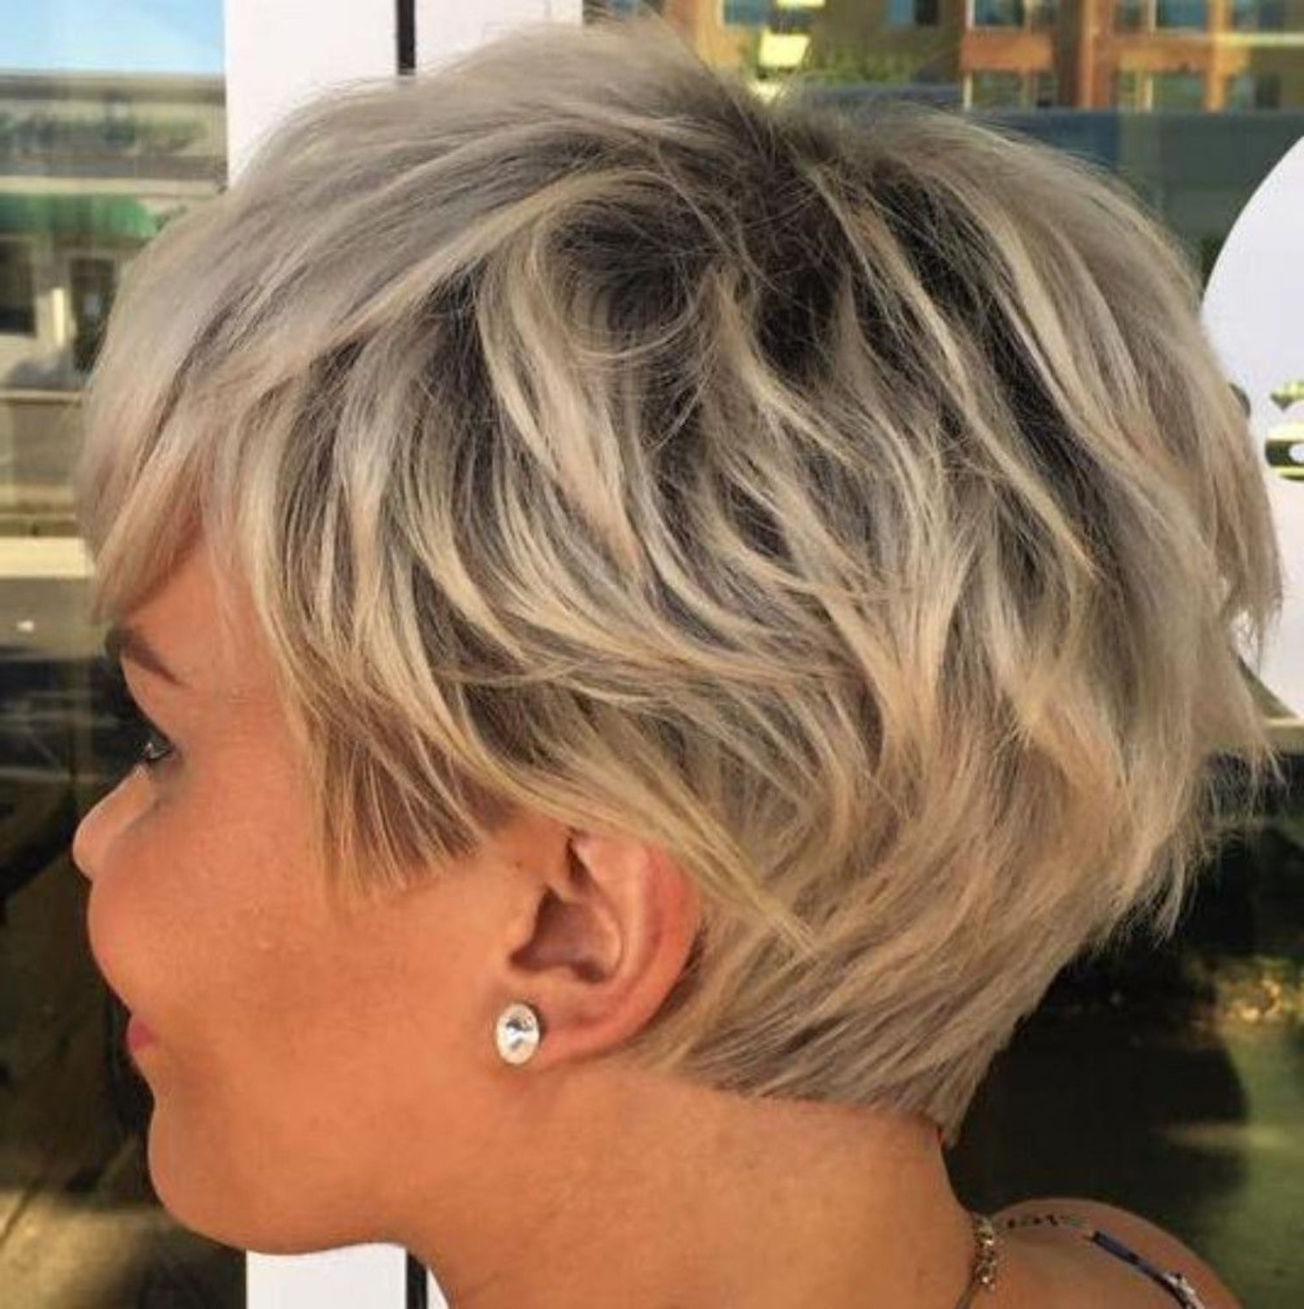 70 Short Shaggy, Spiky, Edgy Pixie Cuts And Hairstyles | 2018 Hair Pertaining To Most Current Ash Blonde Pixie With Nape Undercut (Gallery 13 of 15)